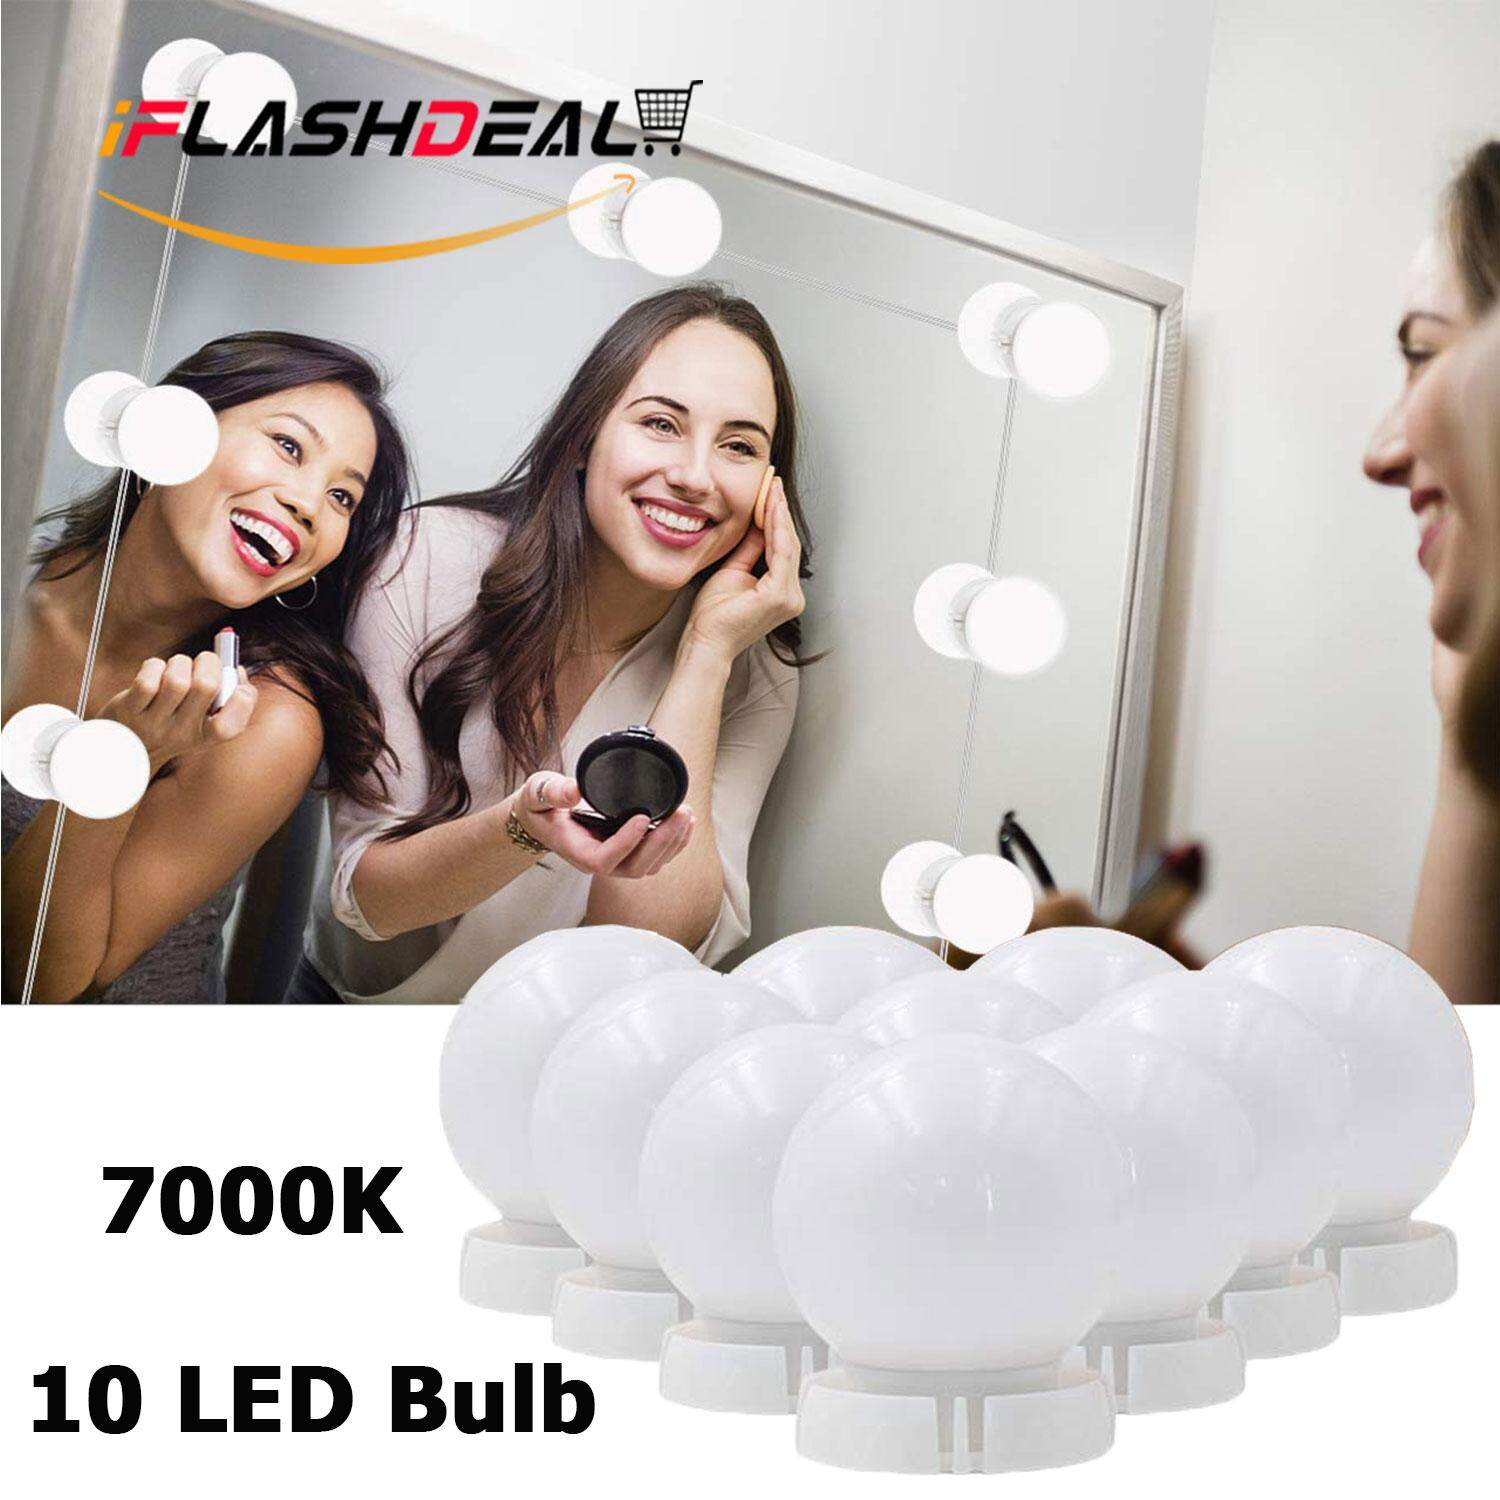 iFlashDeal Led Mirror Lights Make Up Vanity Mirror Light with 10 Light Bulbs for Makeup Dressing Table Lighting Strip Hollywood Style Philippines